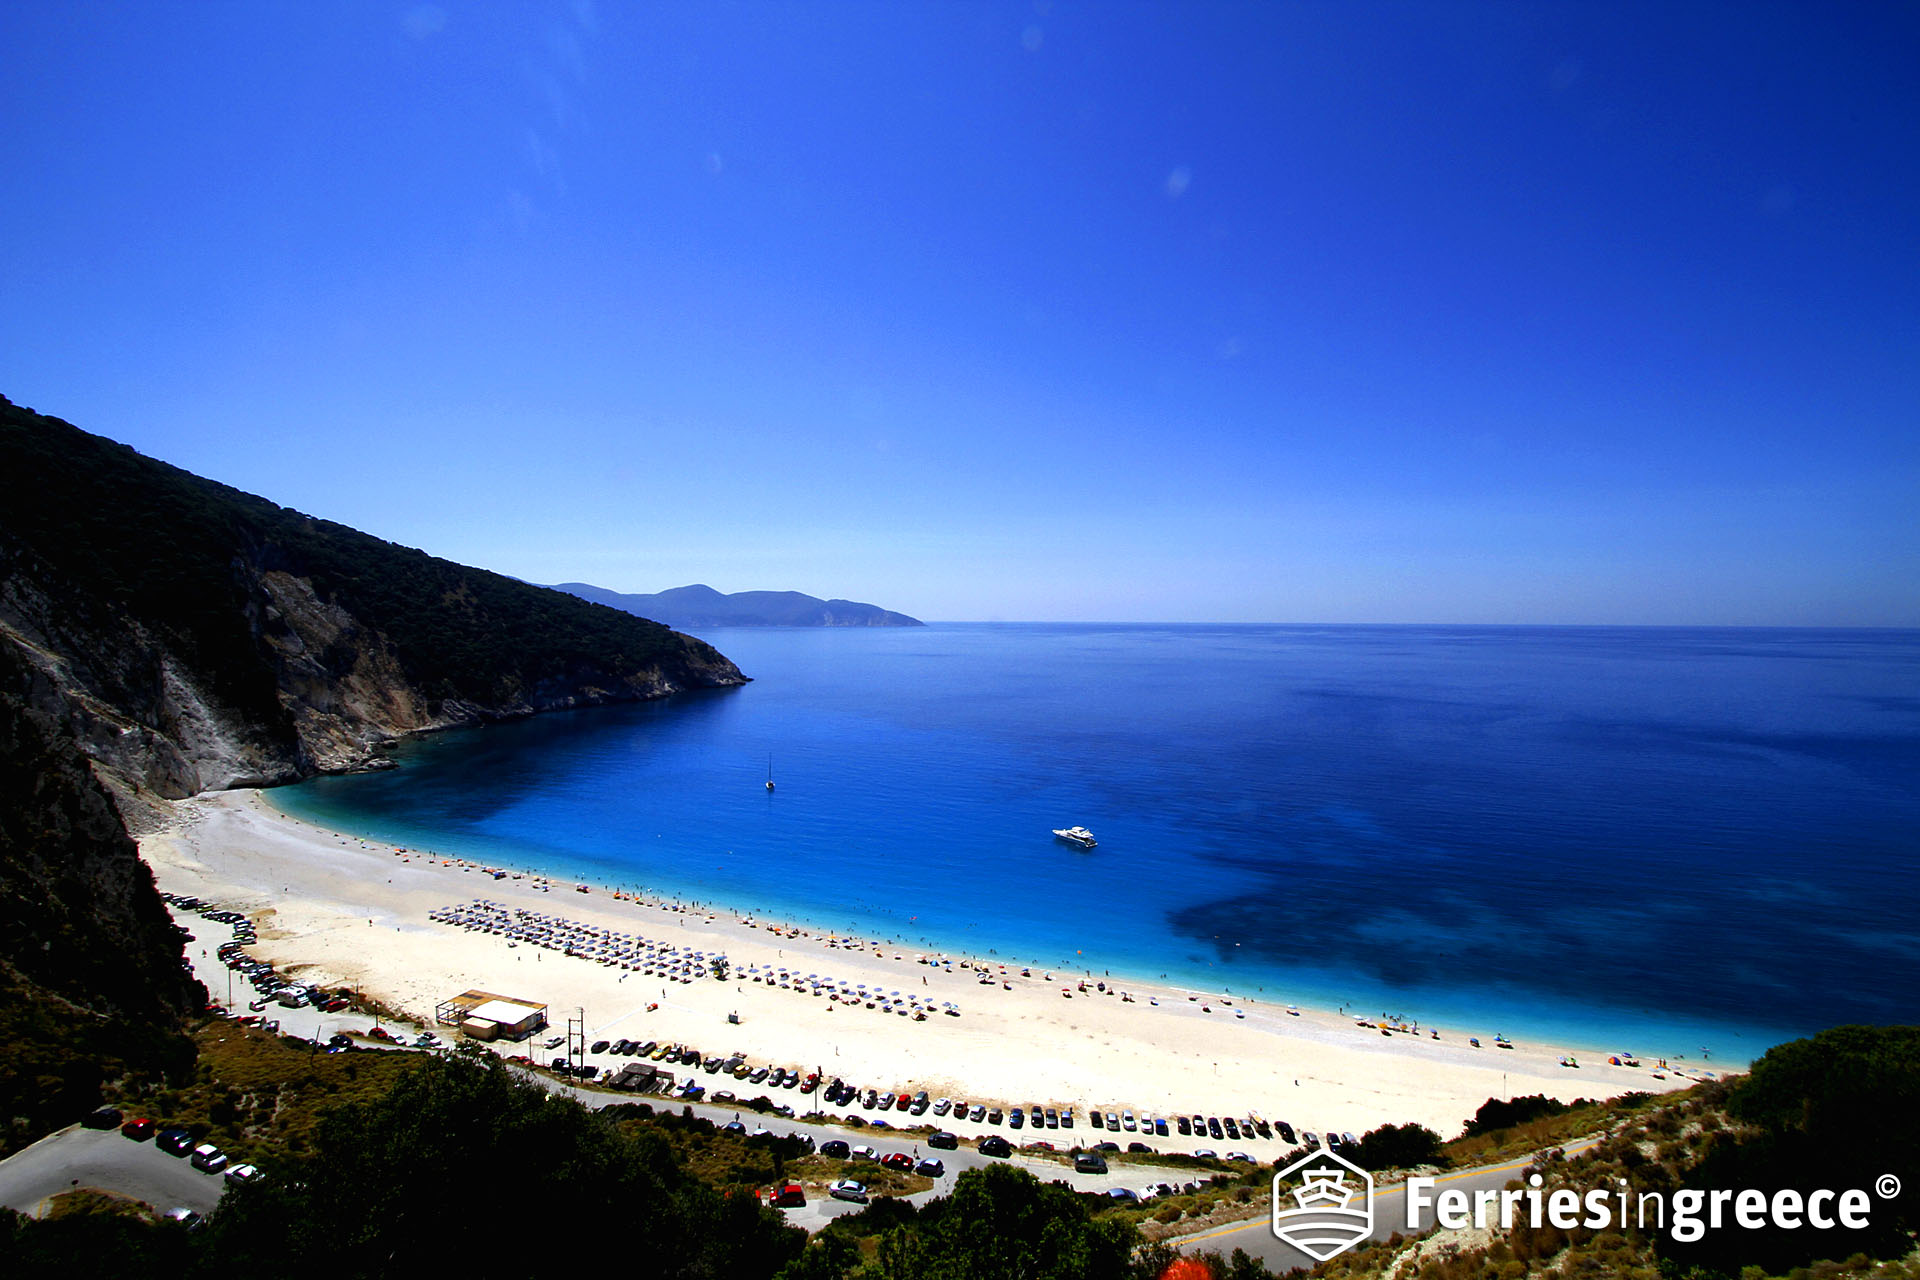 Best beaches in the Greek islands: Myrtos beach